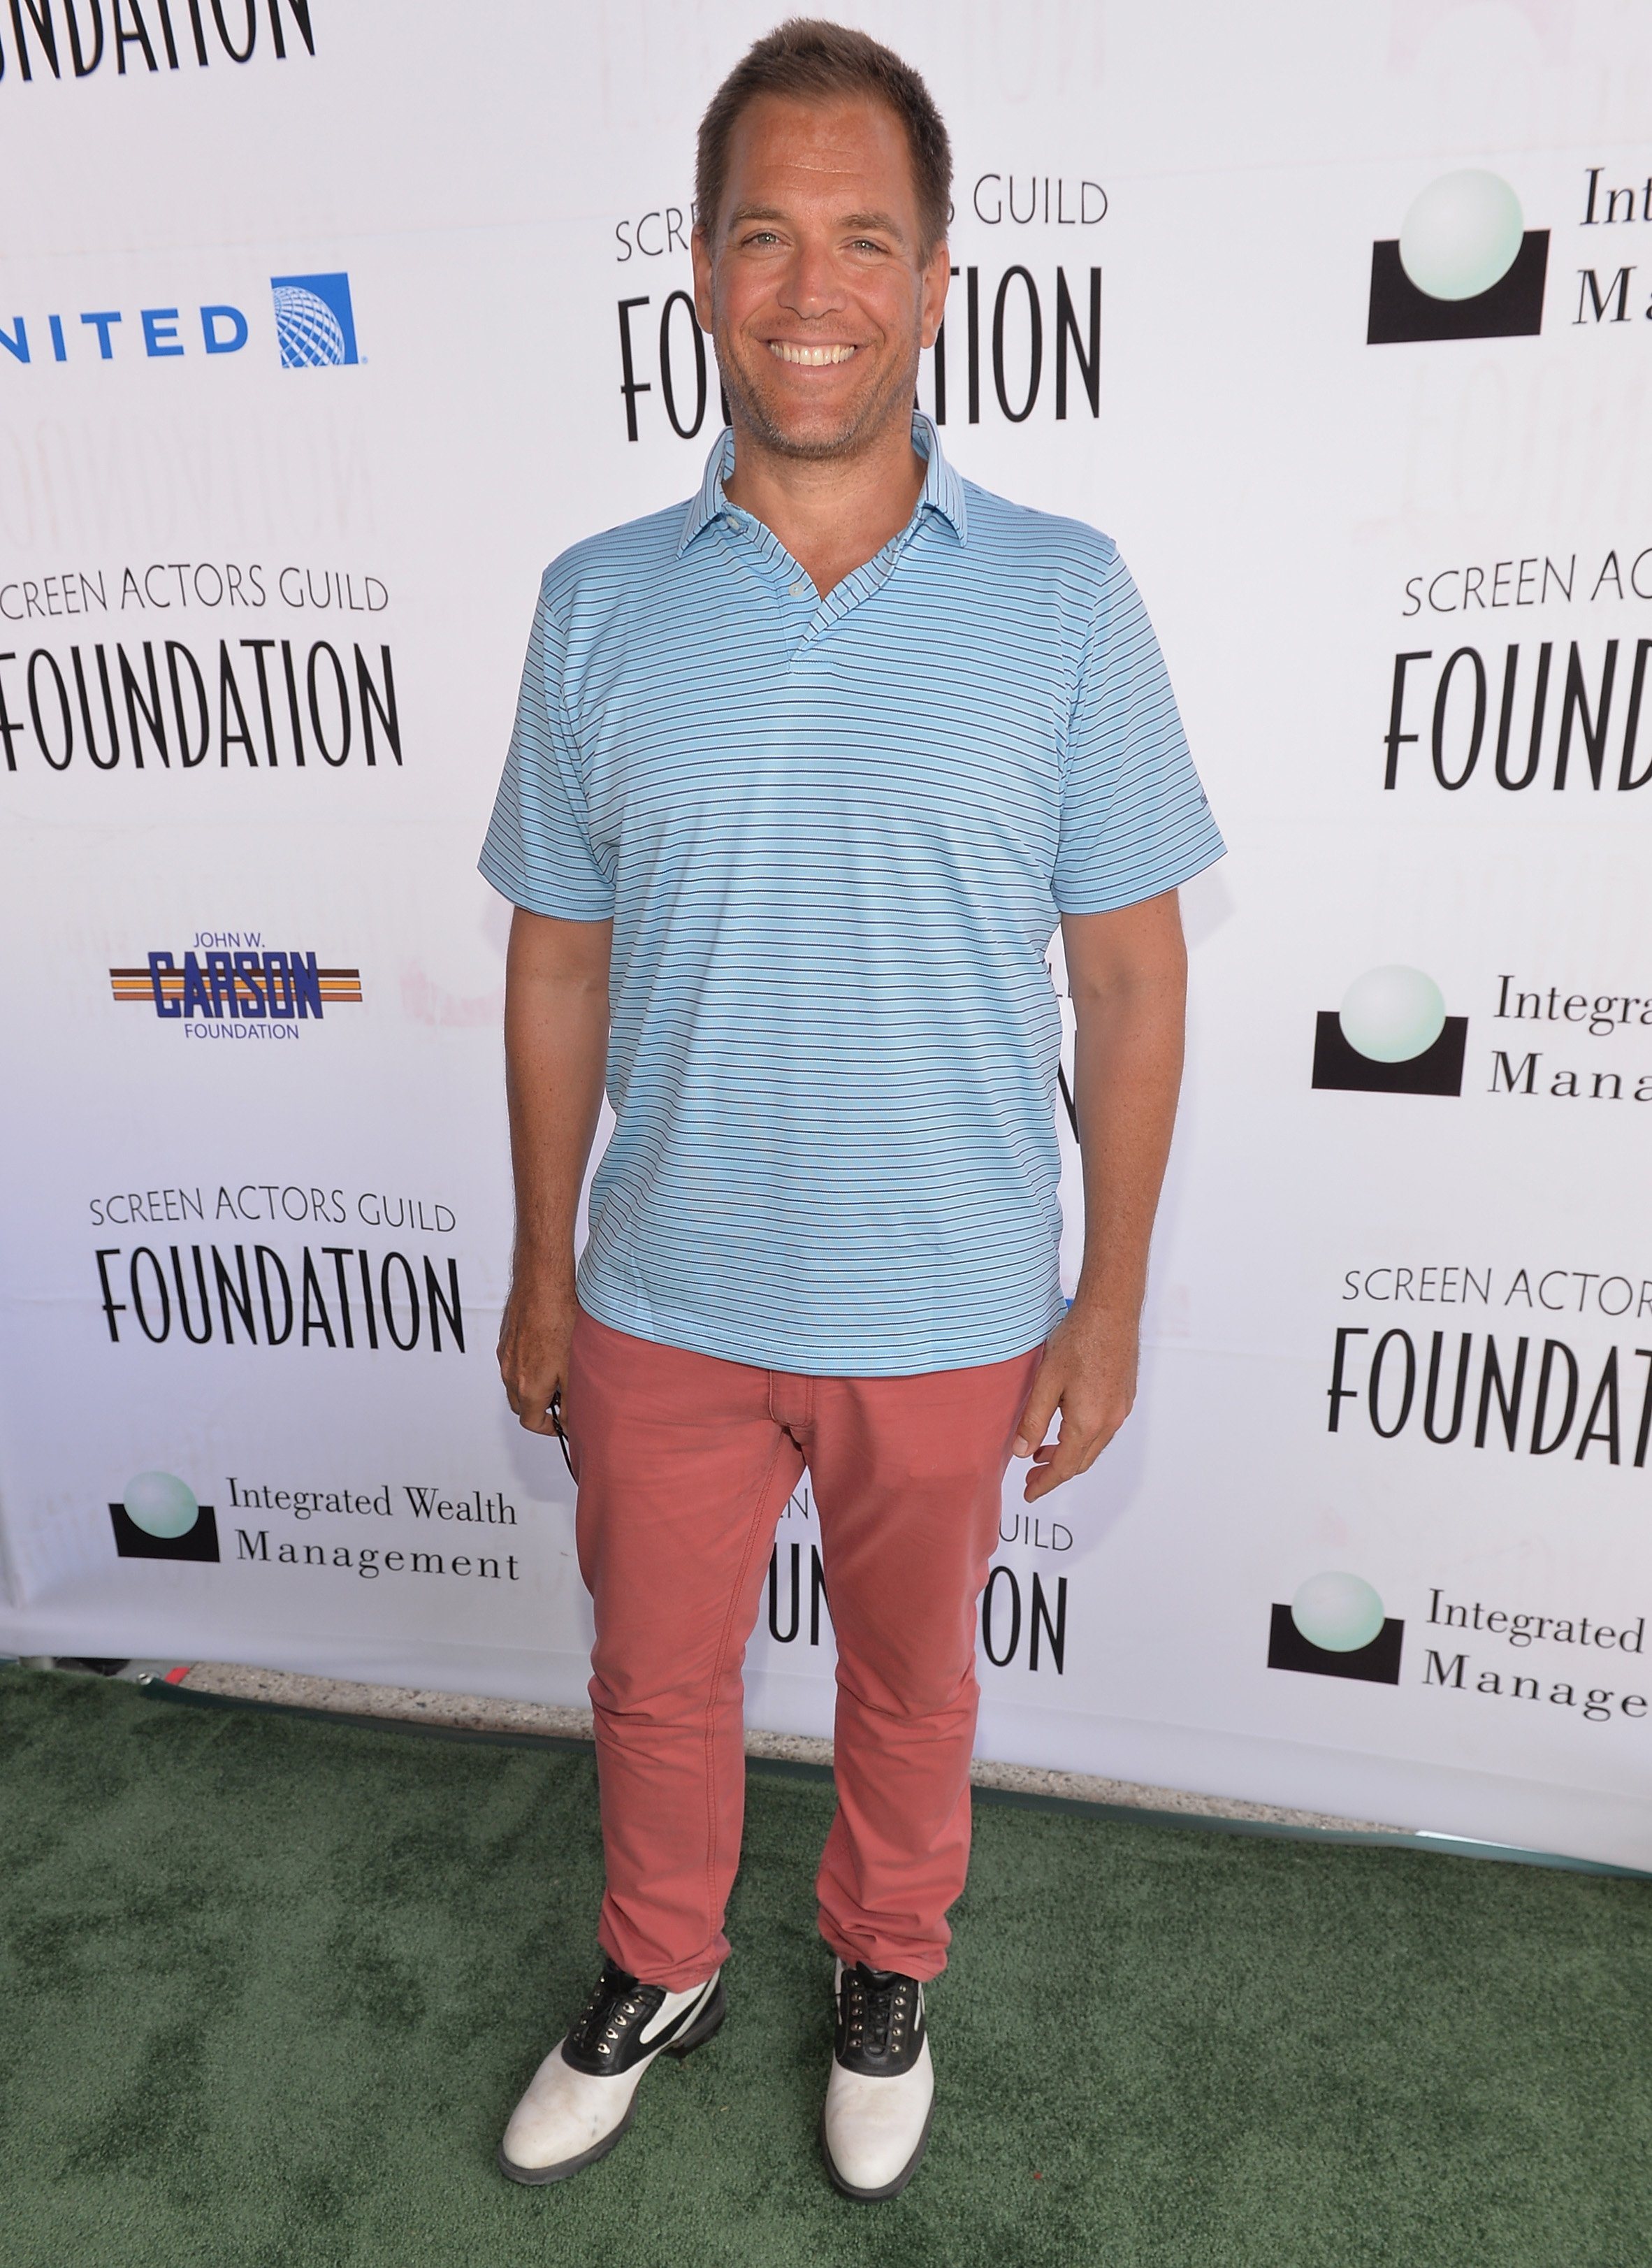 Michael Weatherly at an event by the Screen Actors Guild Foundation | Photo: Getty Images